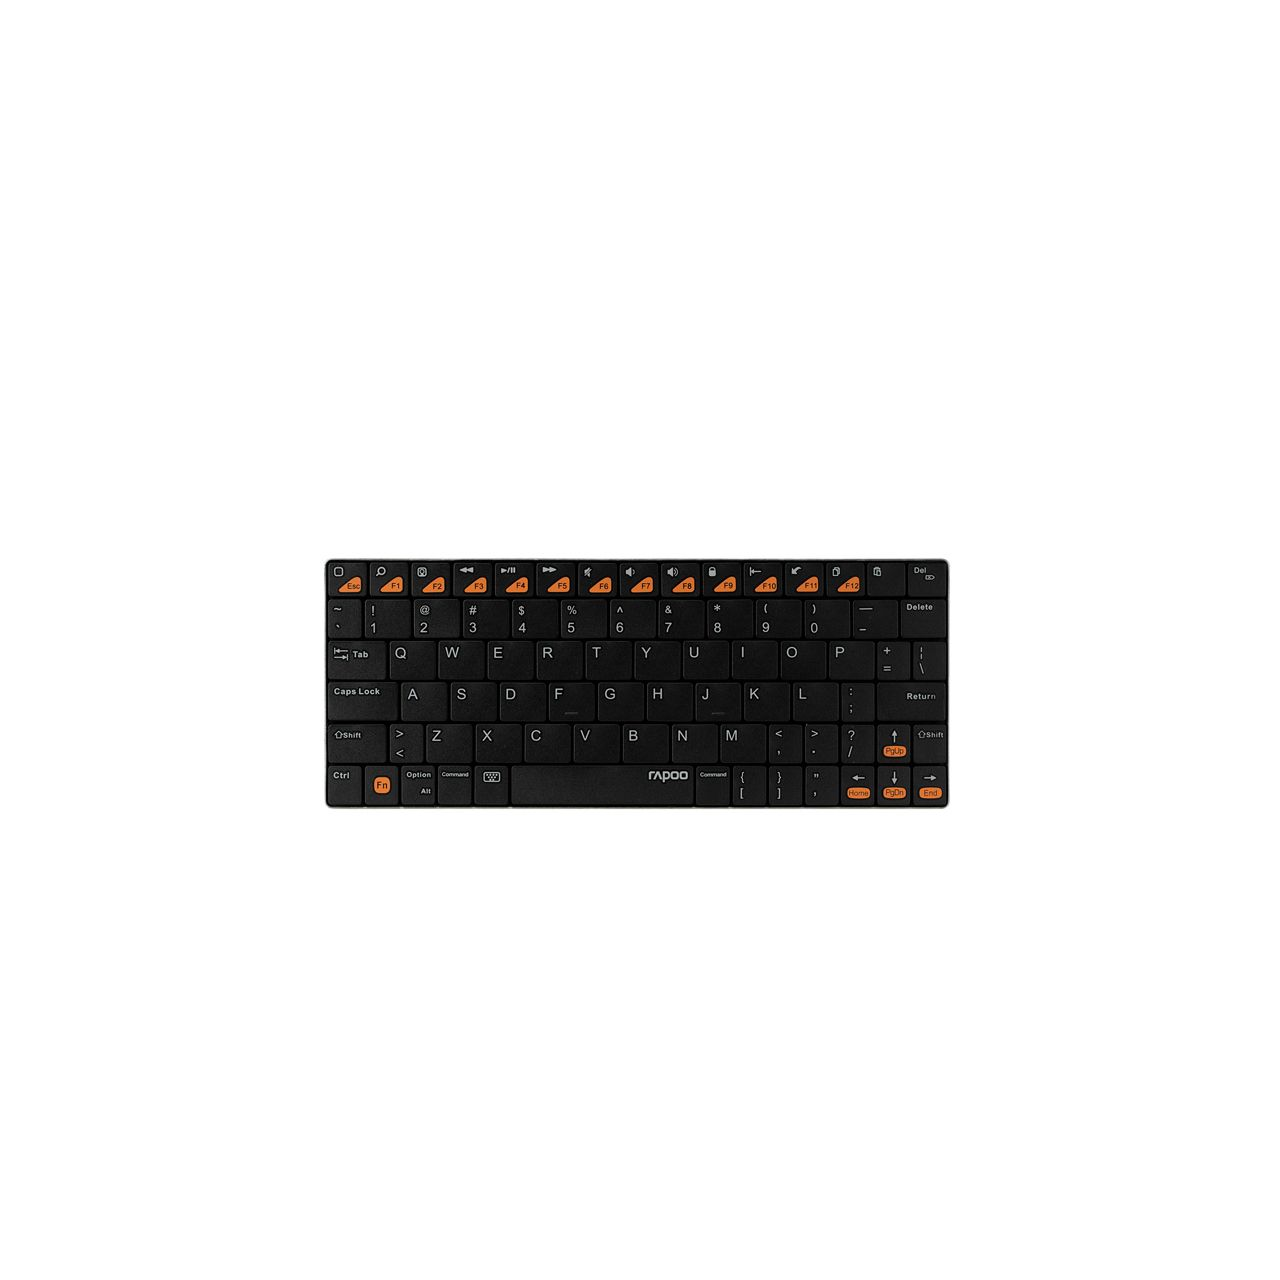 rapoo tablet keyboard e6300 toetsenbord ERKAESTZ01 Categorie